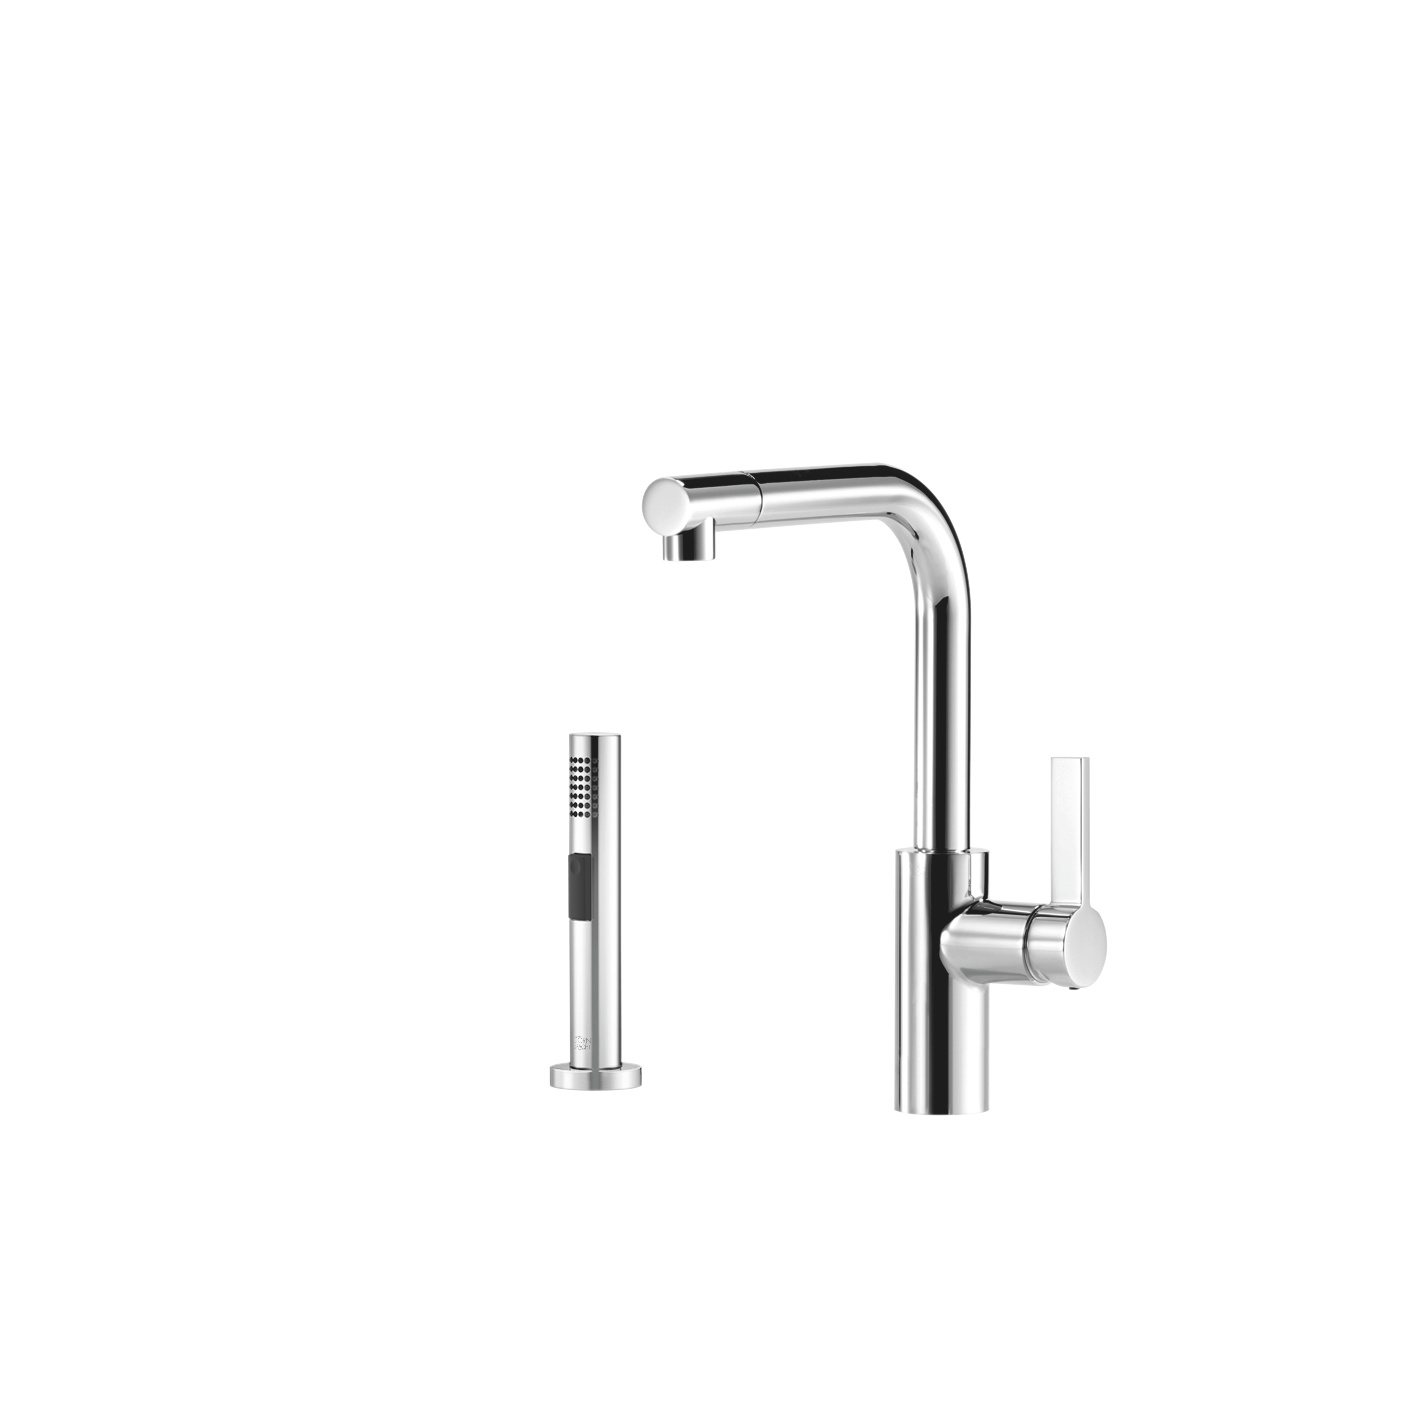 Single-lever mixer with rinsing spray set - polished chrome - 33 826 790-00 + 27 721 970-00